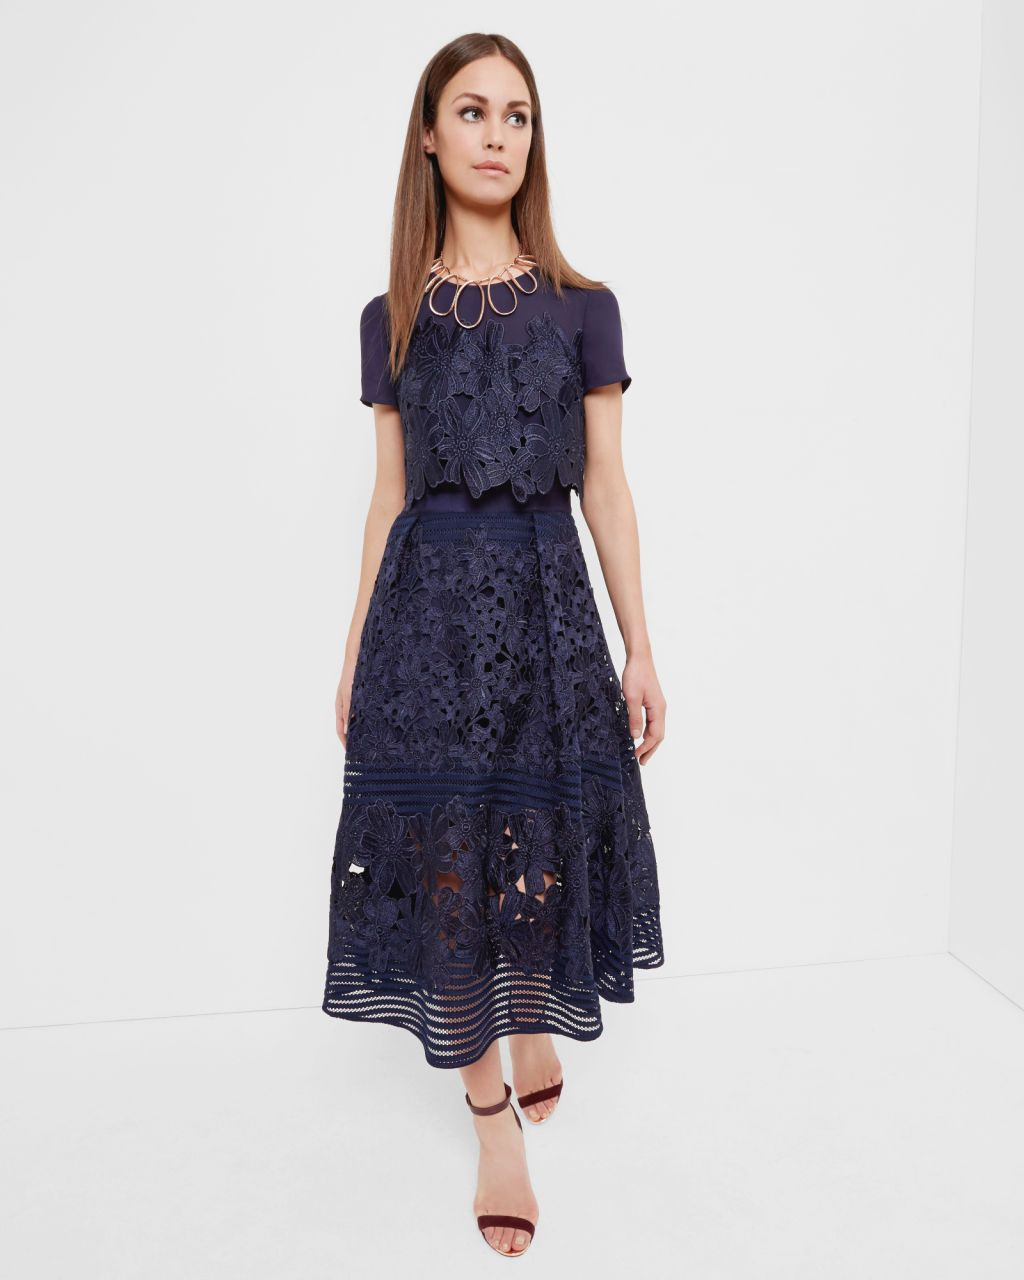 Stunning Wedding Guest Dresses: 45 Dresses To Wear To A Winter Wedding